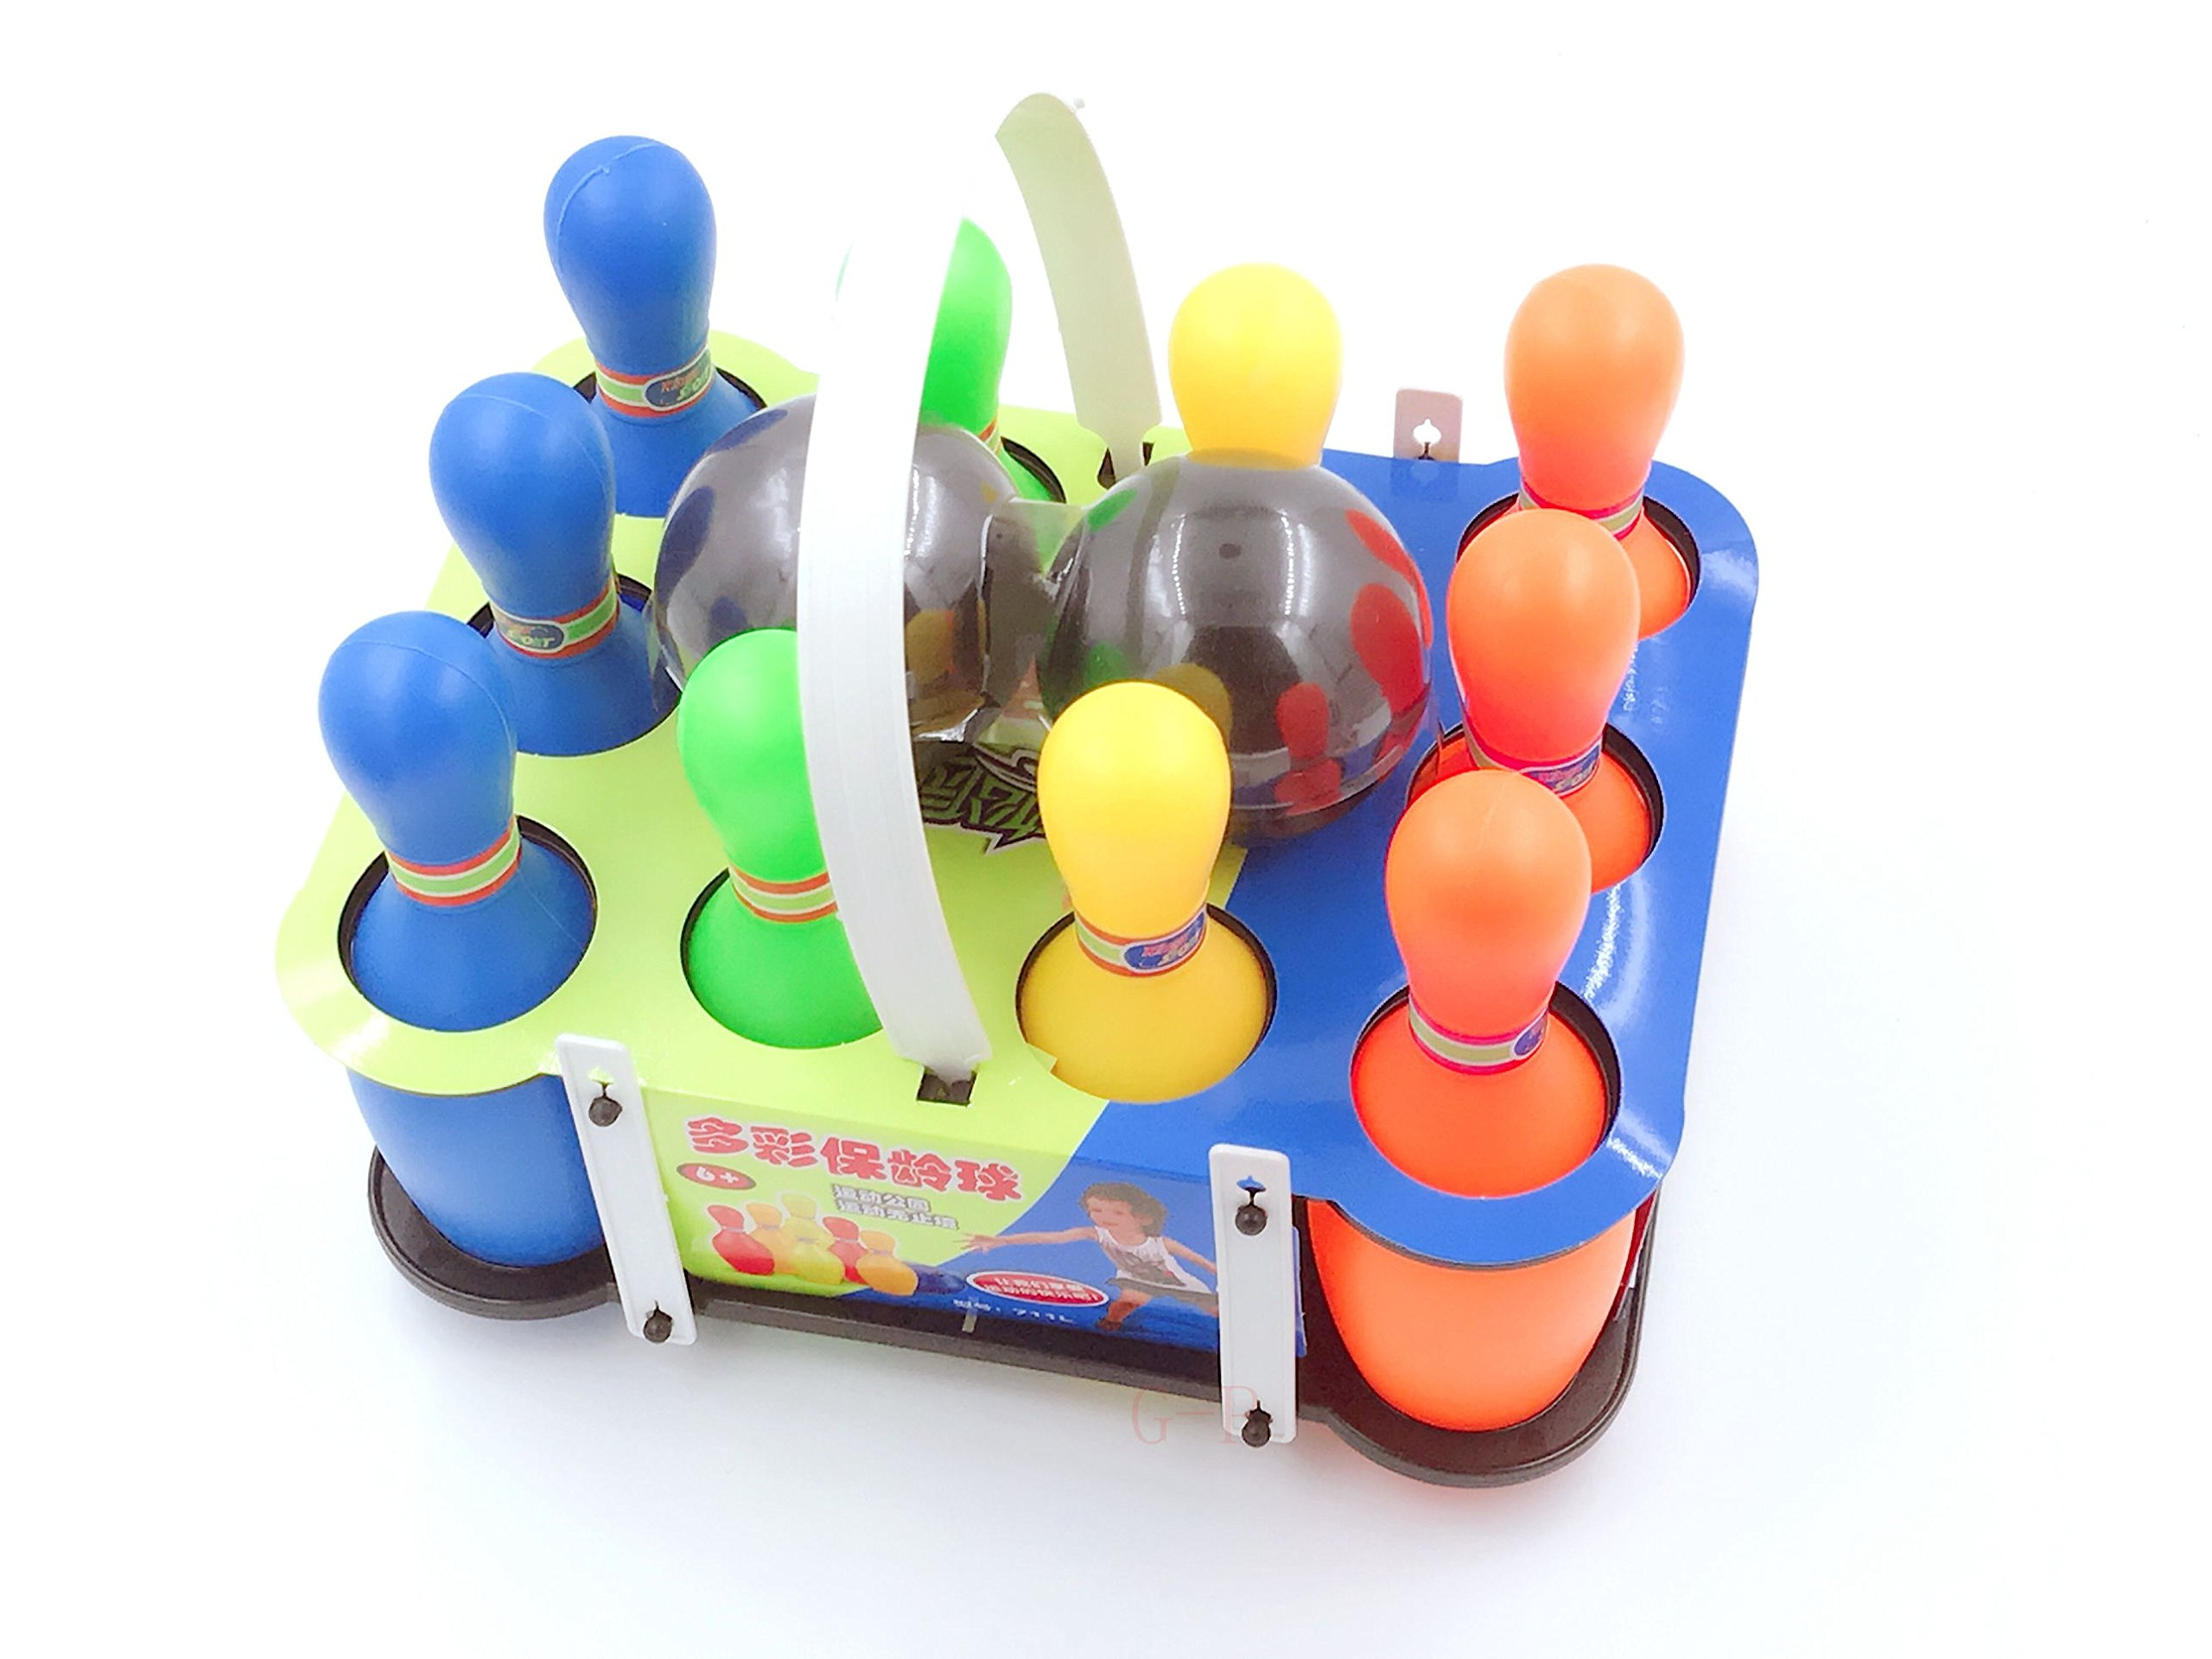 Xing-Rui 10 Pin Multi-Color Deluxe Plastic Bowling Set for Kids with Storage Rack - 12 Pieces Total (10 Pins & 2 Bowling Balls)